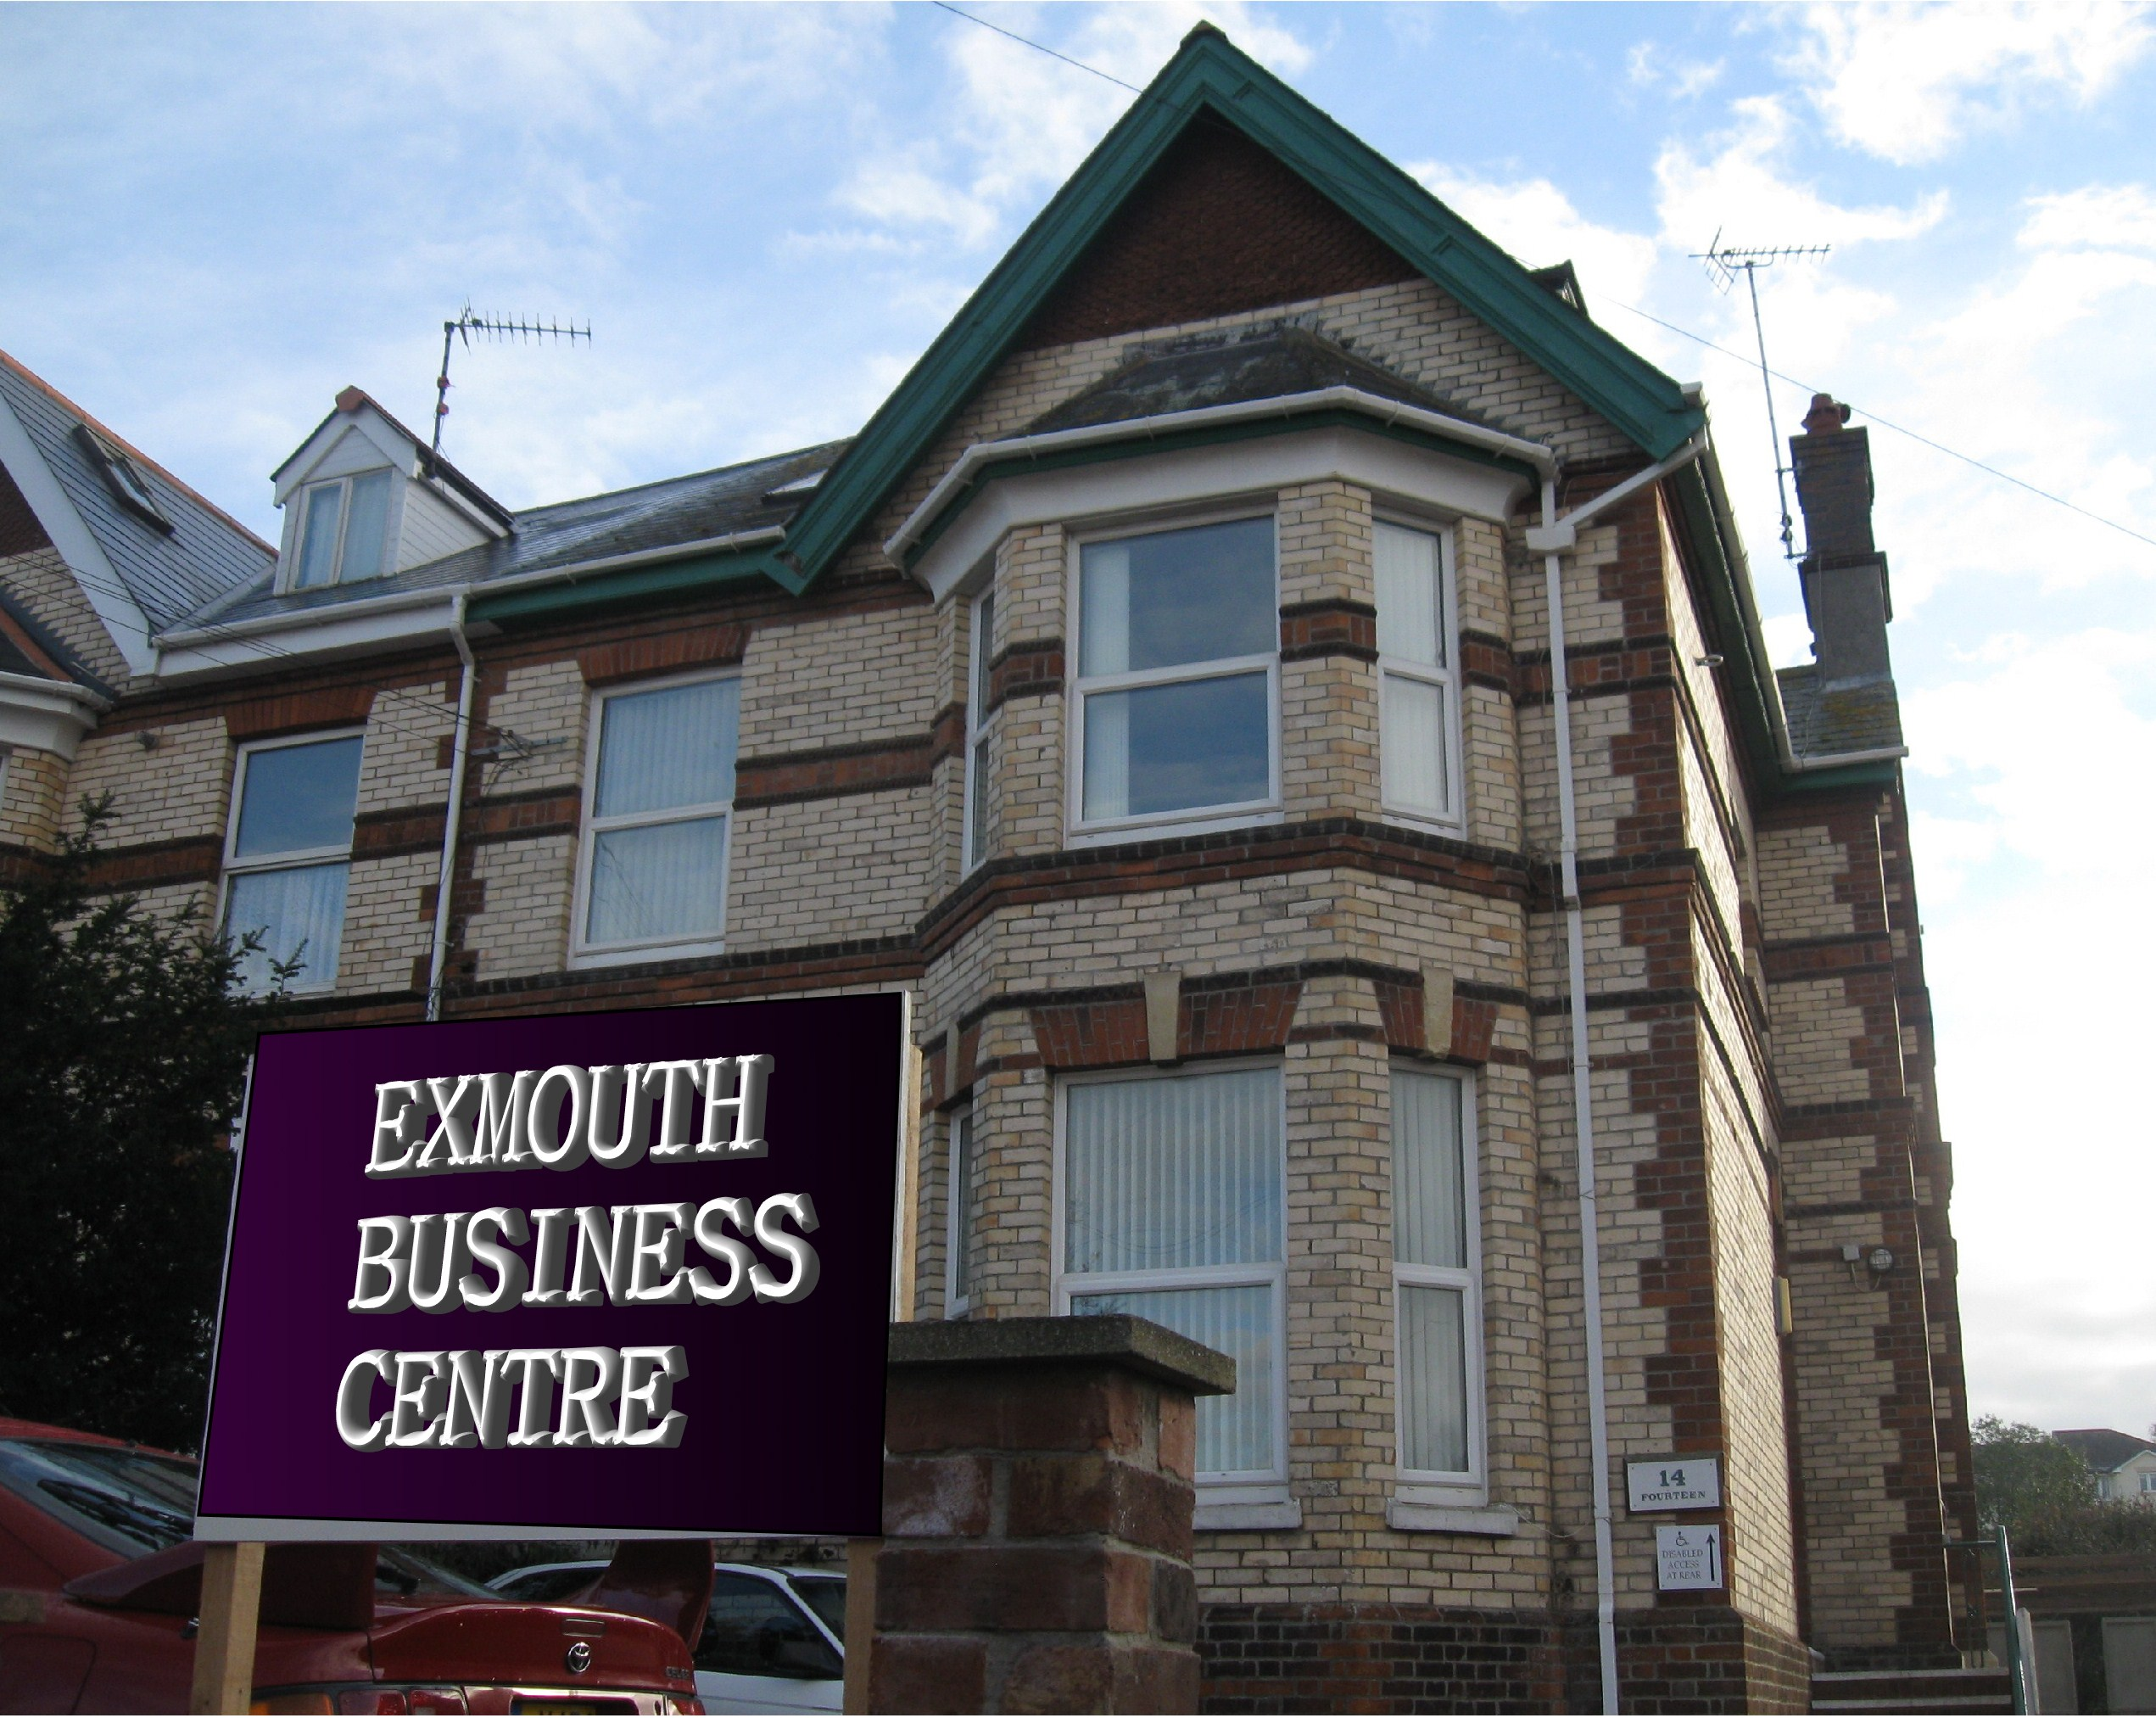 Commercial Property For Rent In Exmouth